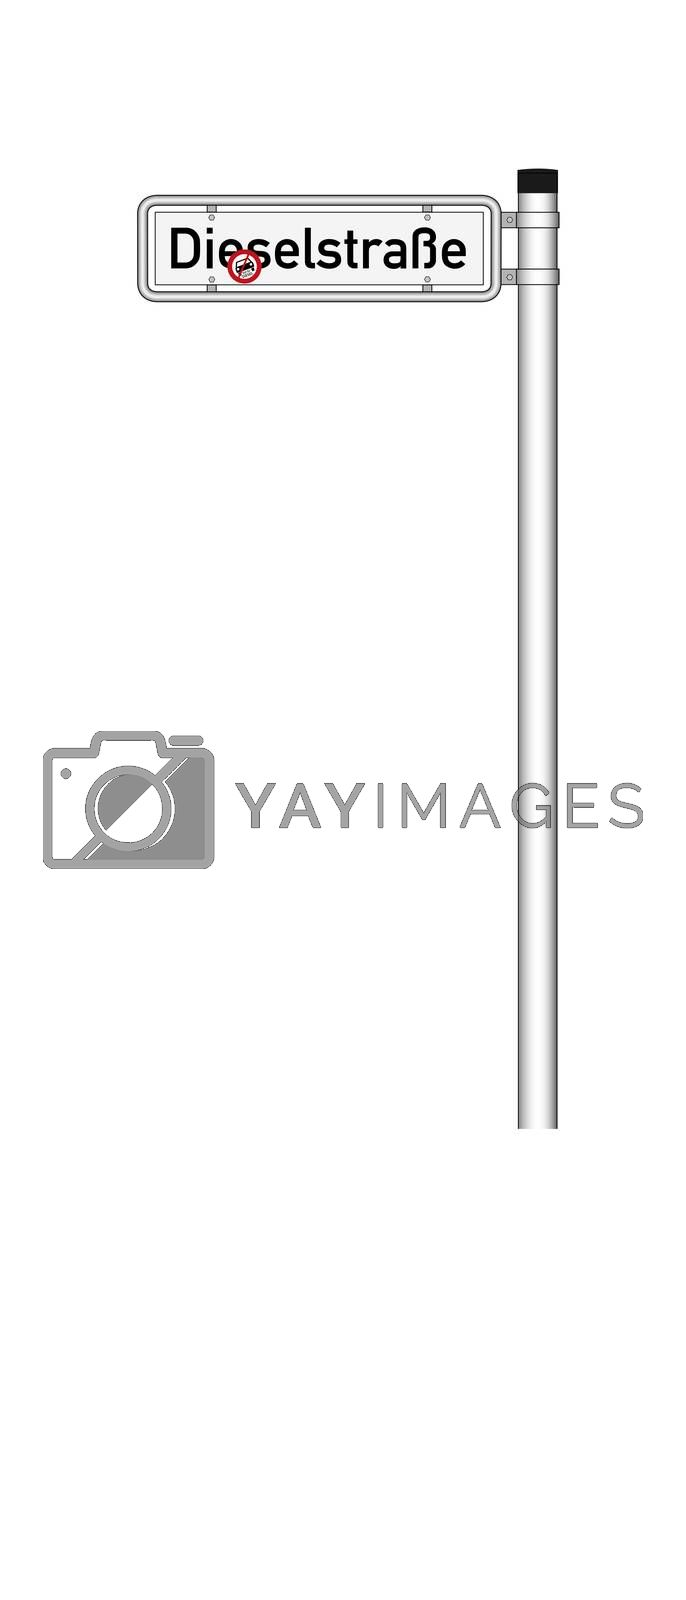 German traffic sign  for diesel driving prohibited with german text for applies to diesel and street sign with german text for diesel street, isolated on white